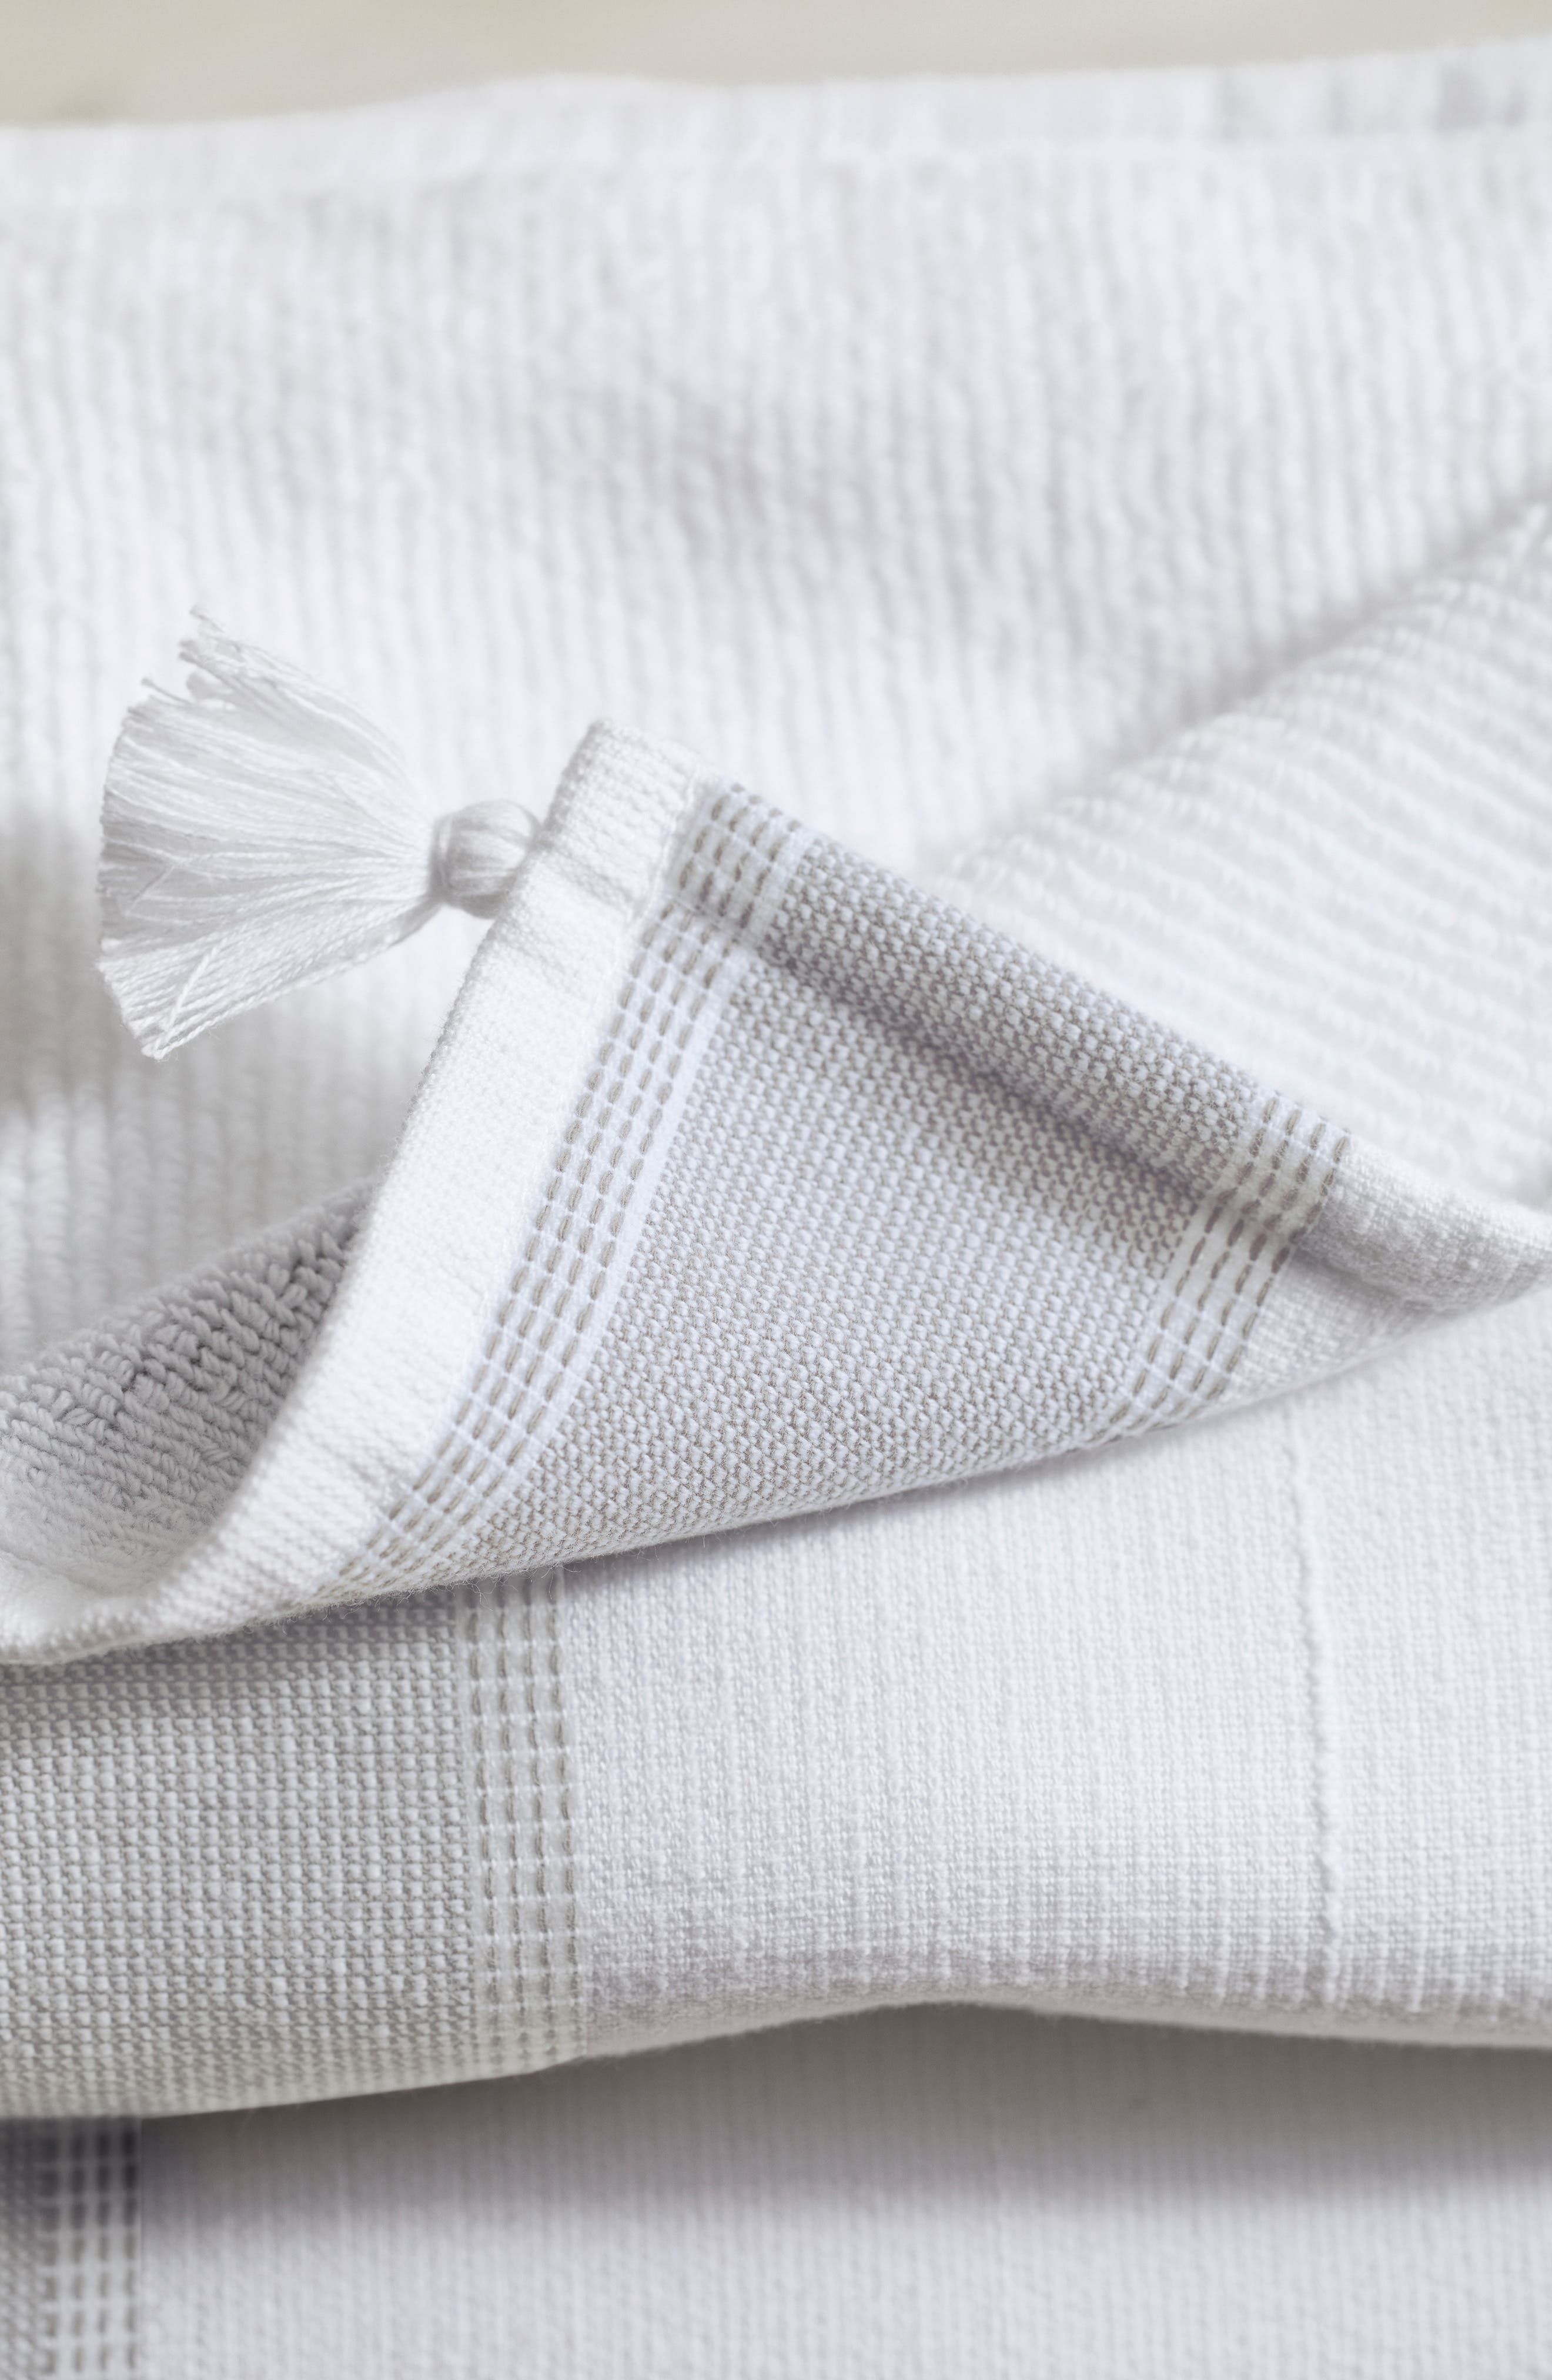 THE WHITE COMPANY,                             St. Ives Hammam Hand Towel,                             Alternate thumbnail 3, color,                             100